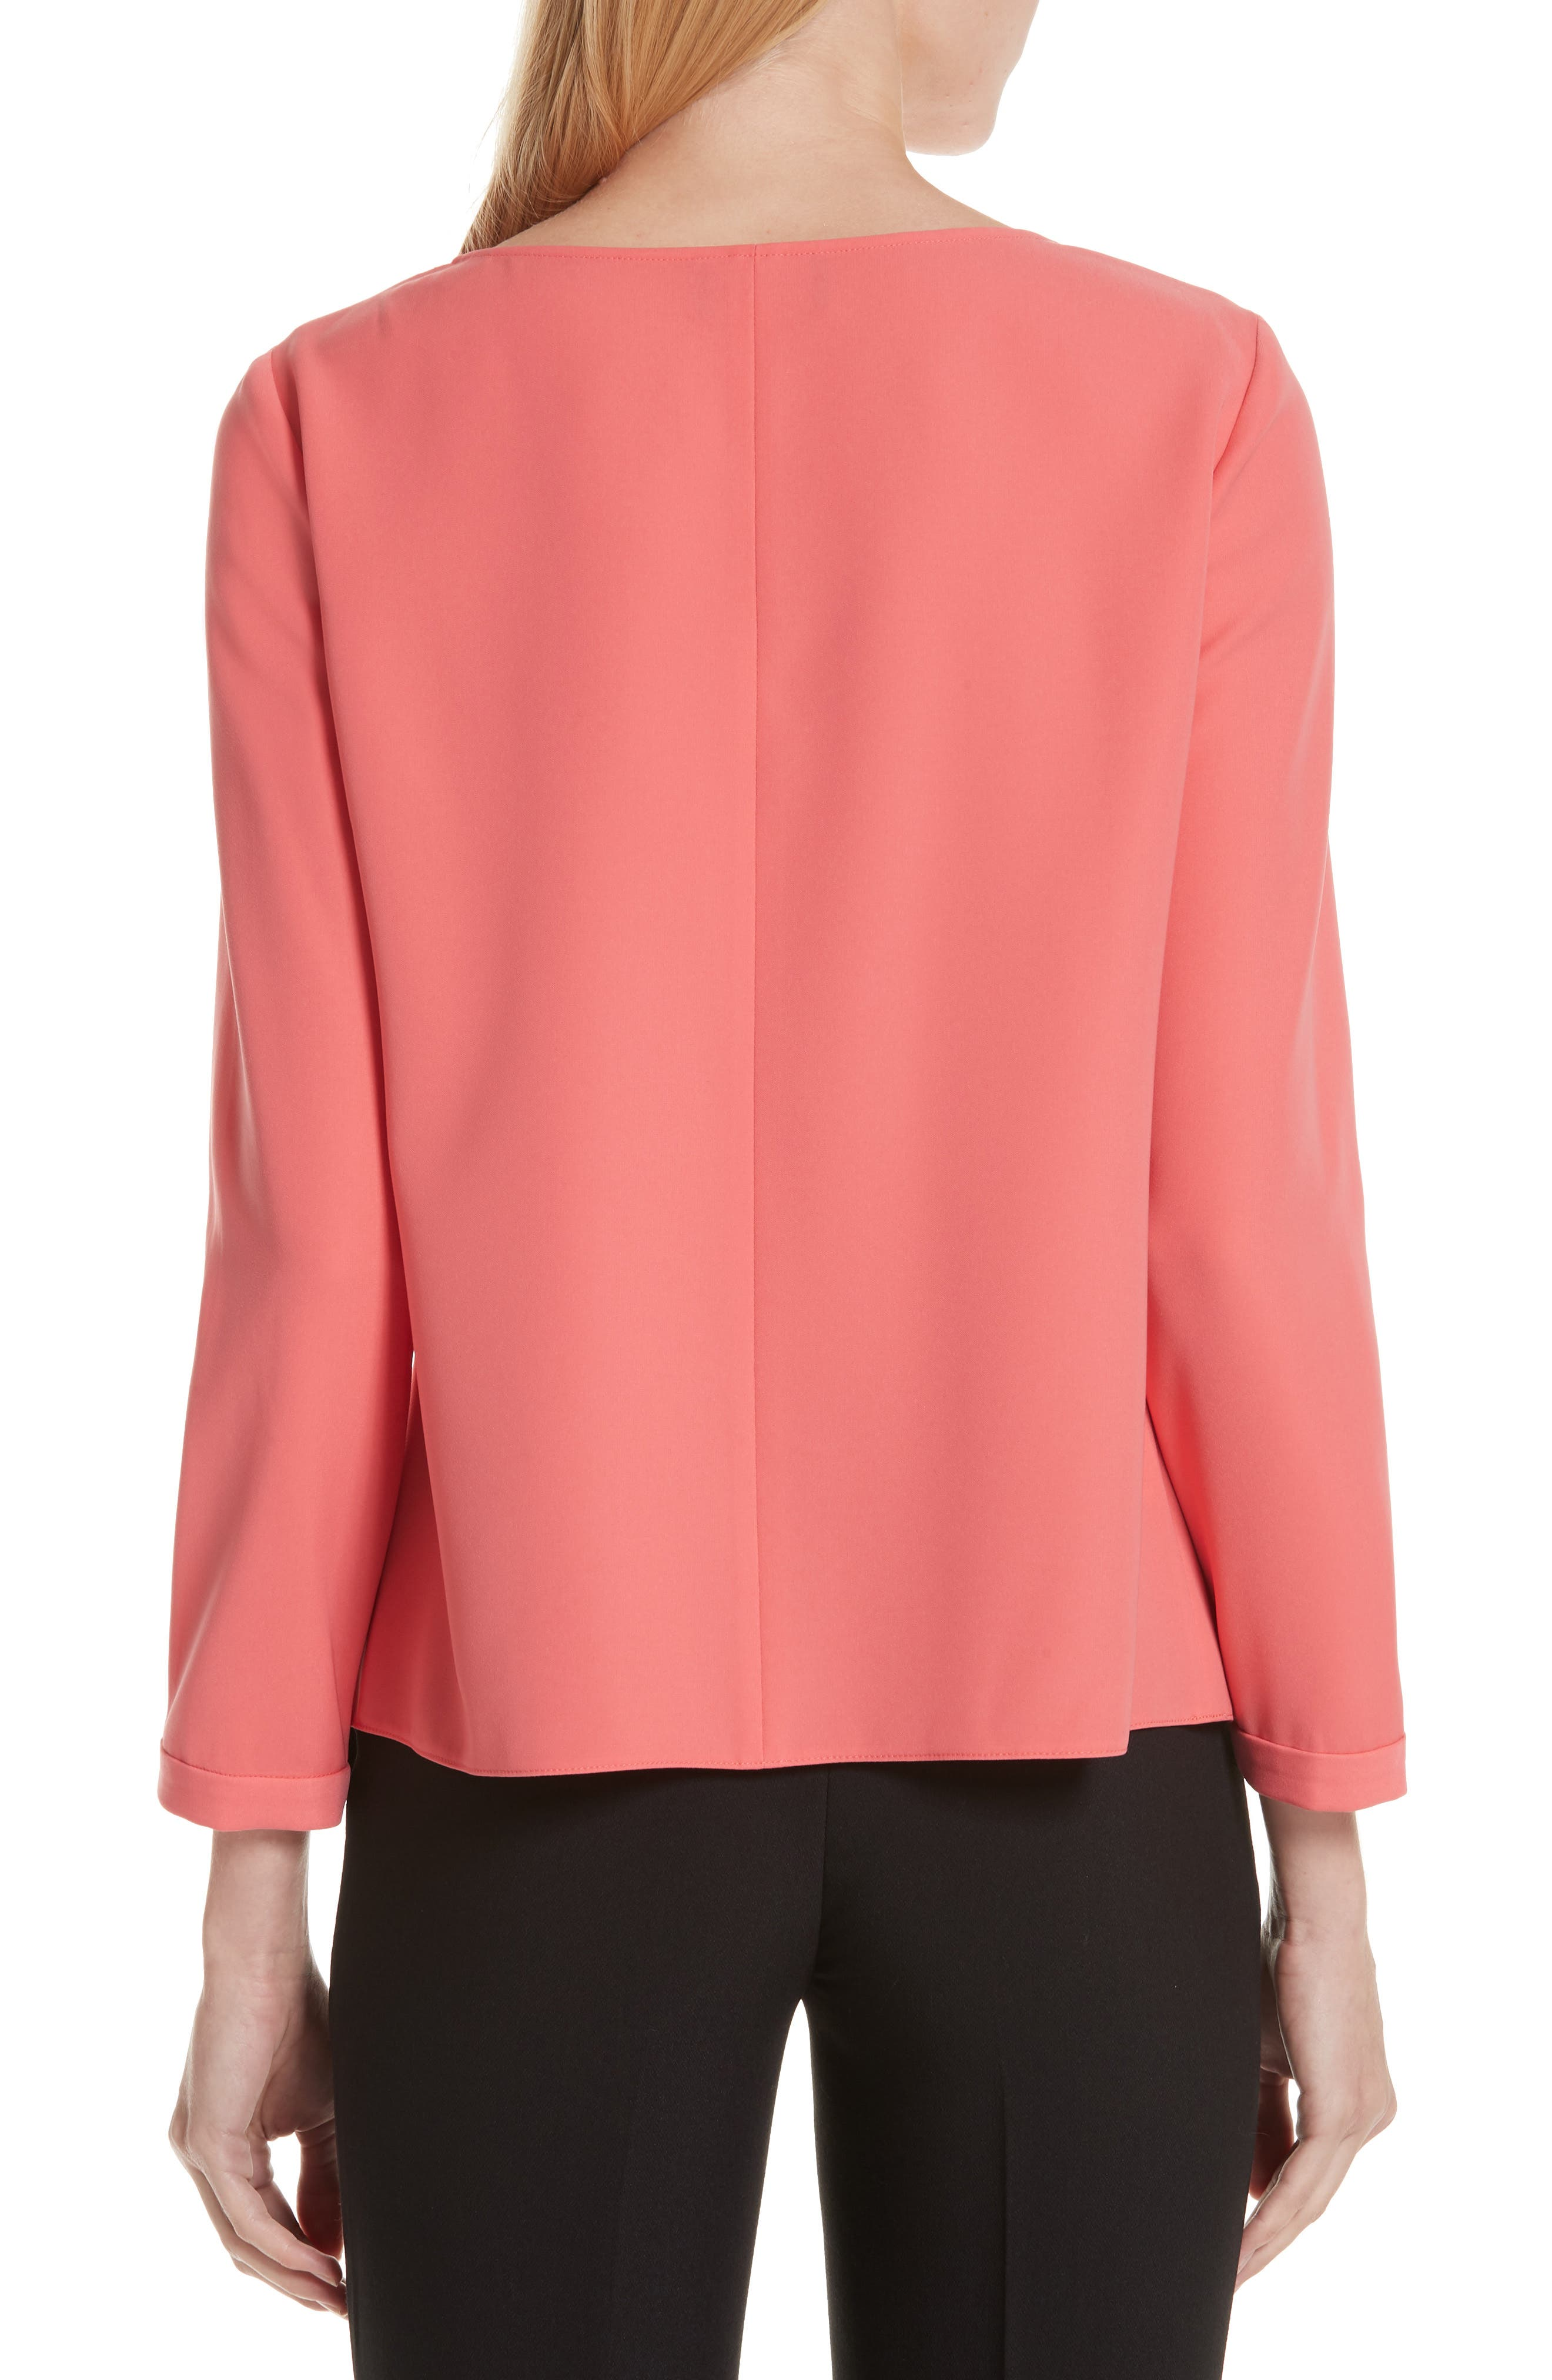 EMPORIO ARMANI,                             Asymmetrical Blouse,                             Alternate thumbnail 2, color,                             SUNRISE RED